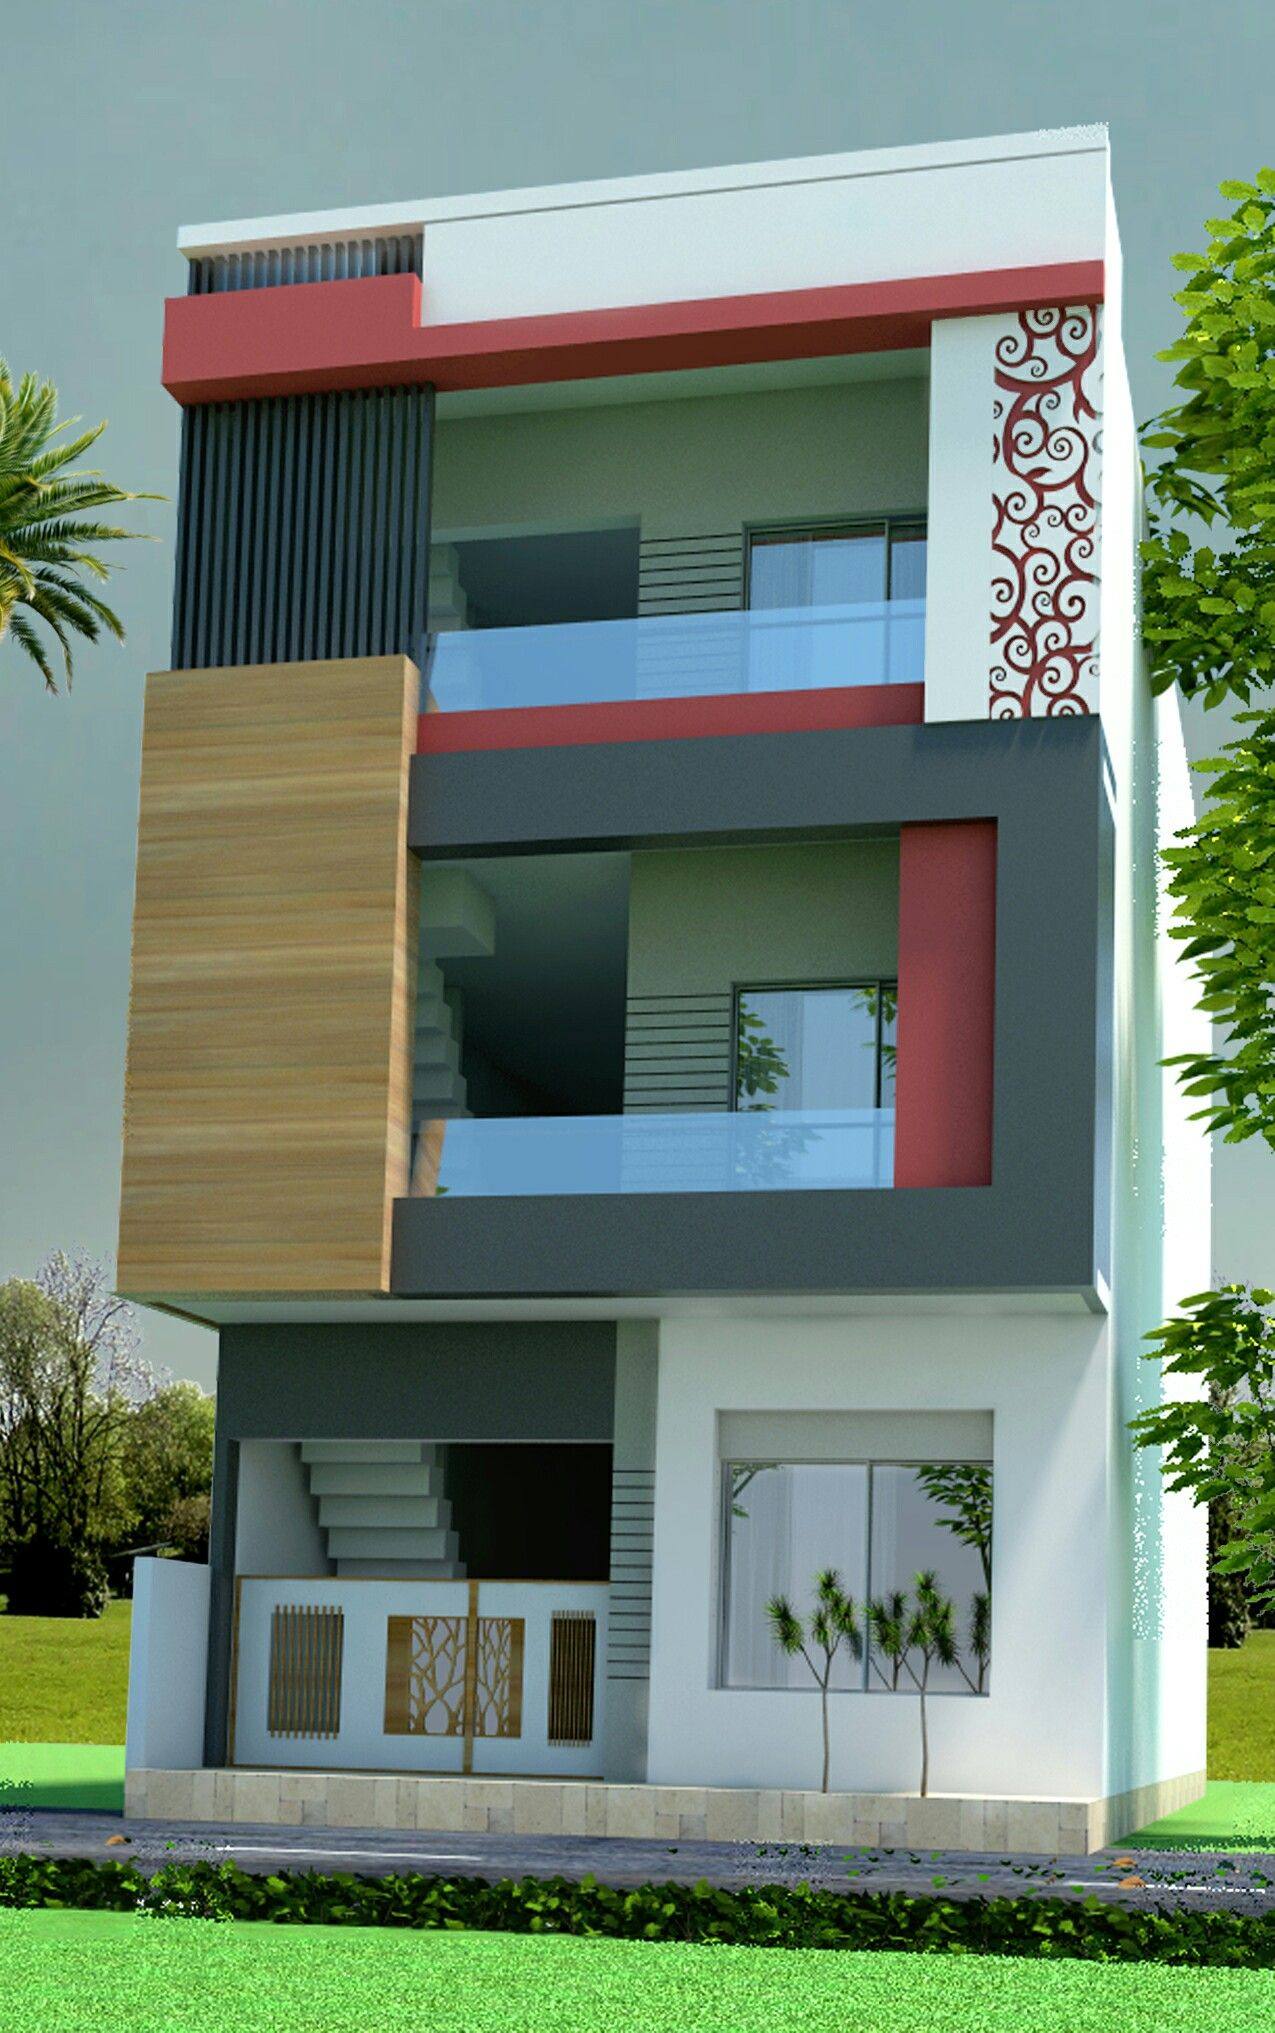 Wooden Thoons In Place Of The Brown Pillars For A Modern Classic Mix Feel With Images: House Front Design, House Designs Exterior, House Exterior